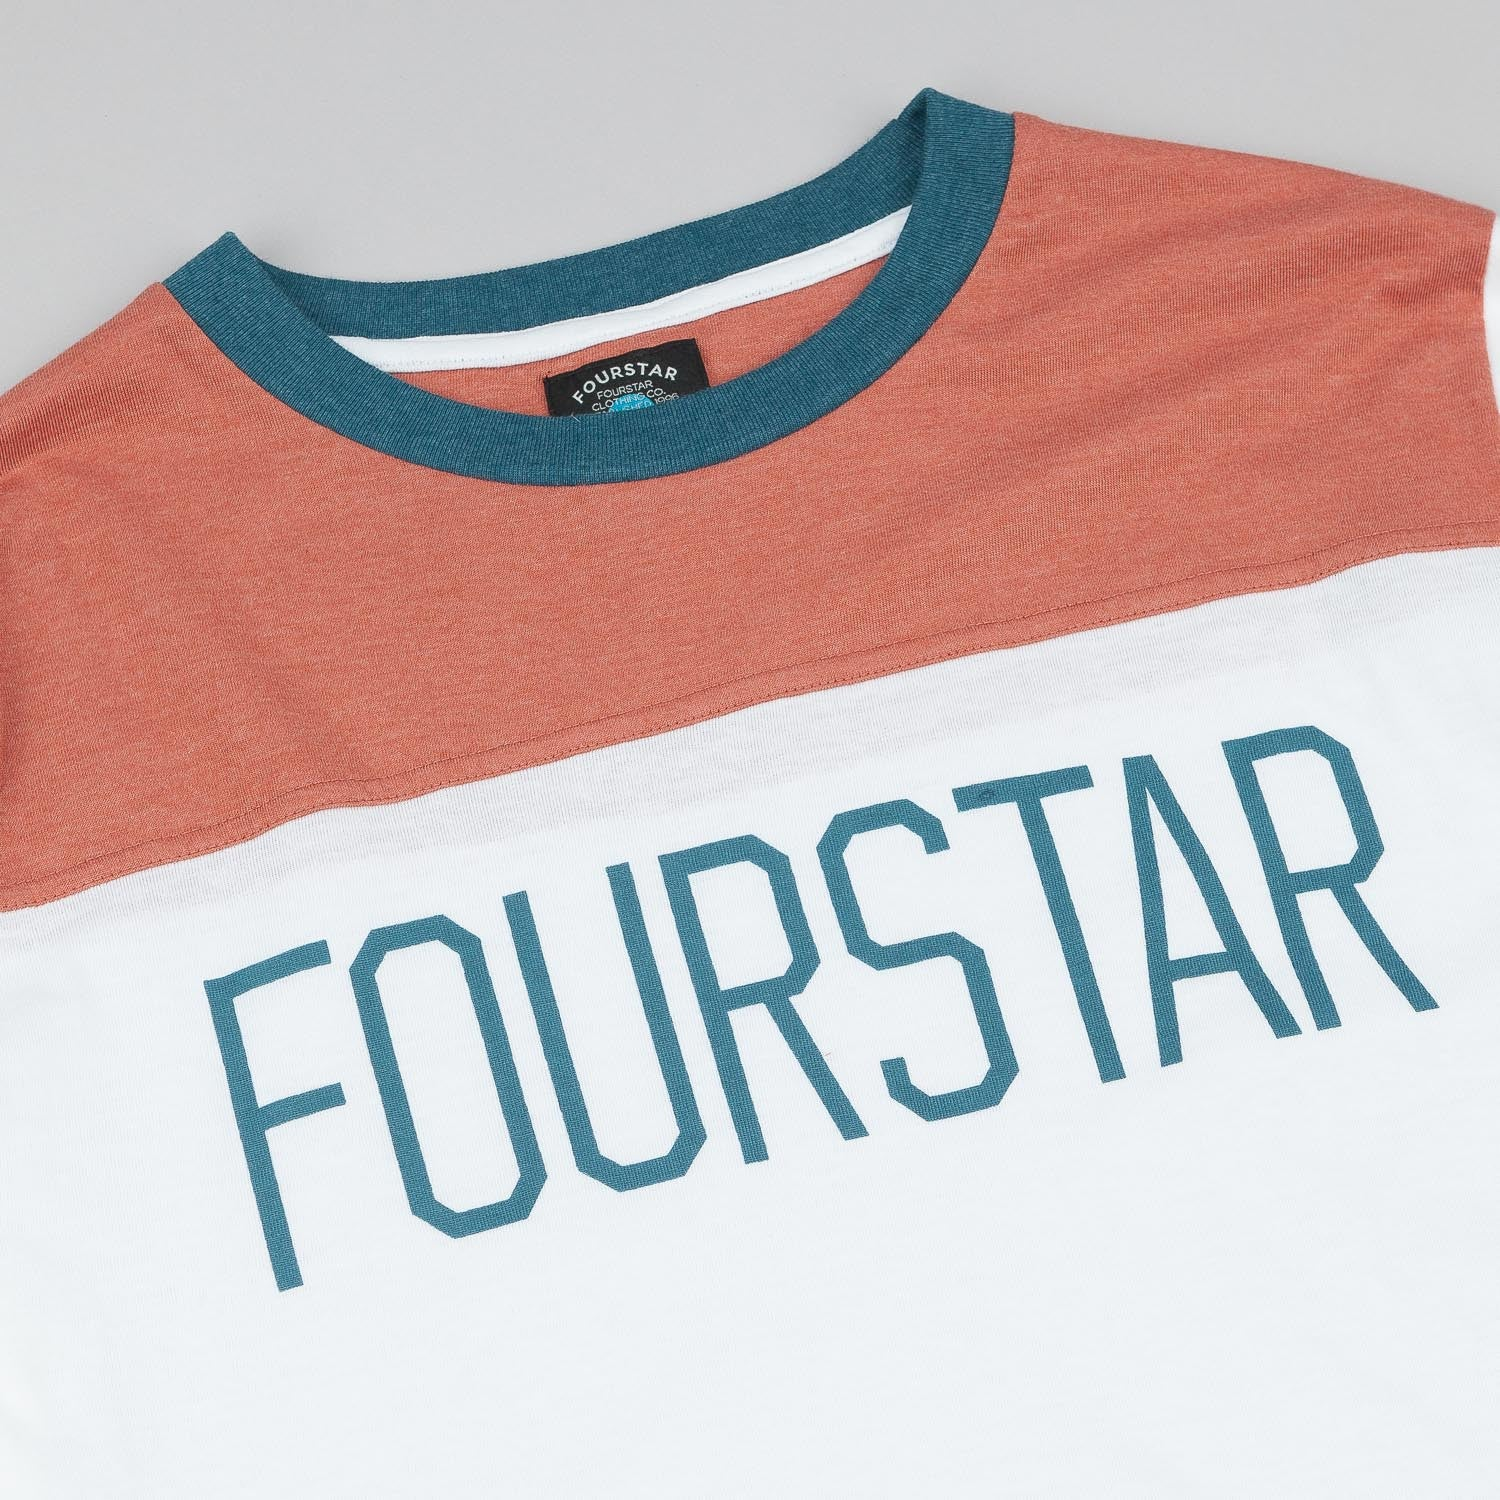 Fourstar League Football 3/4 Sleeve T-Shirt - White